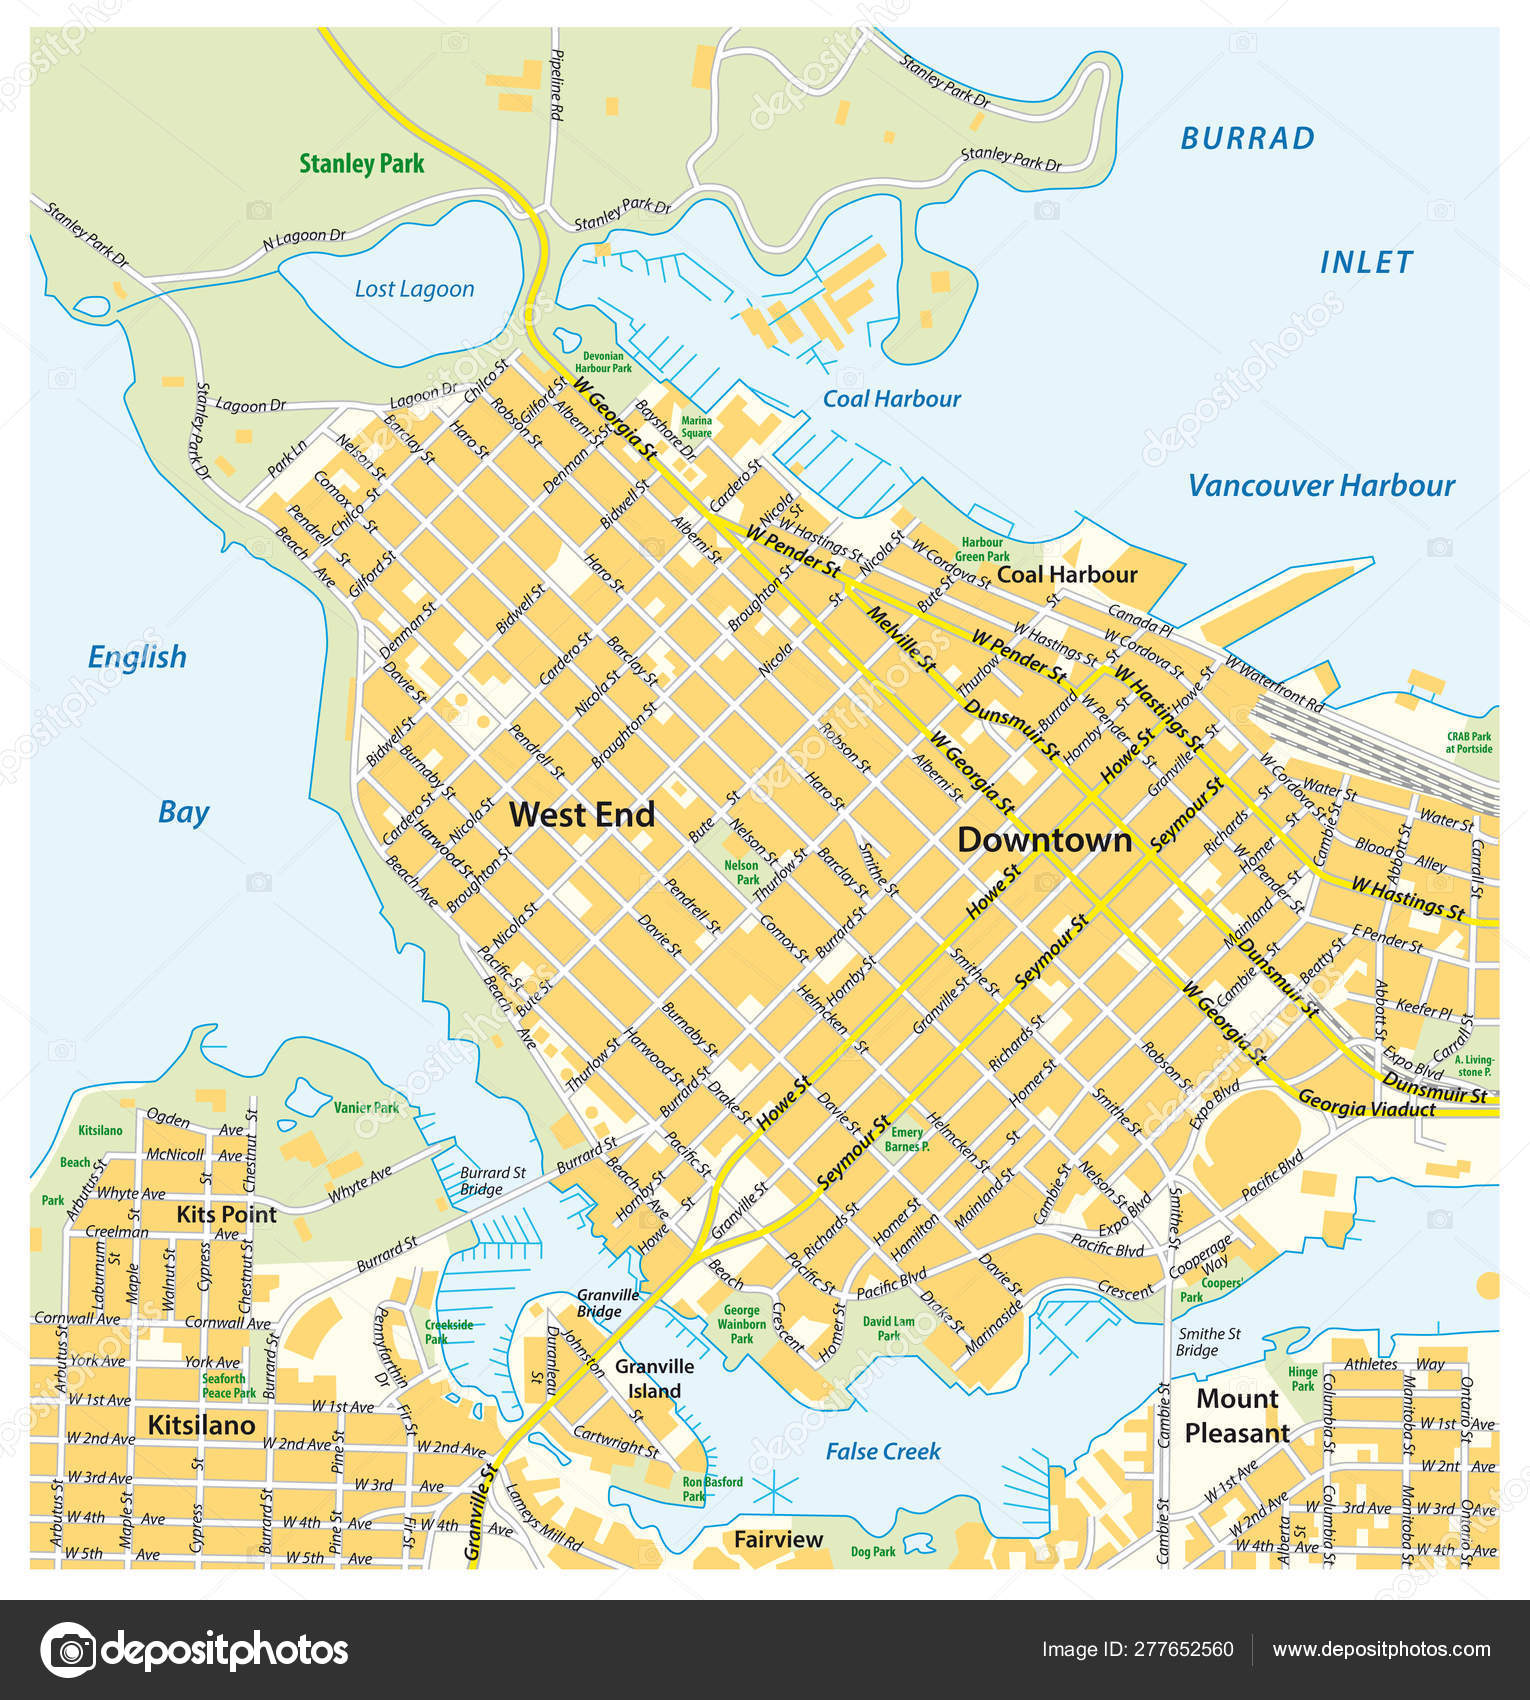 Detailed Map Of Canada.Detailed Street Map Of Downtown Vancouver British Columbia Canada